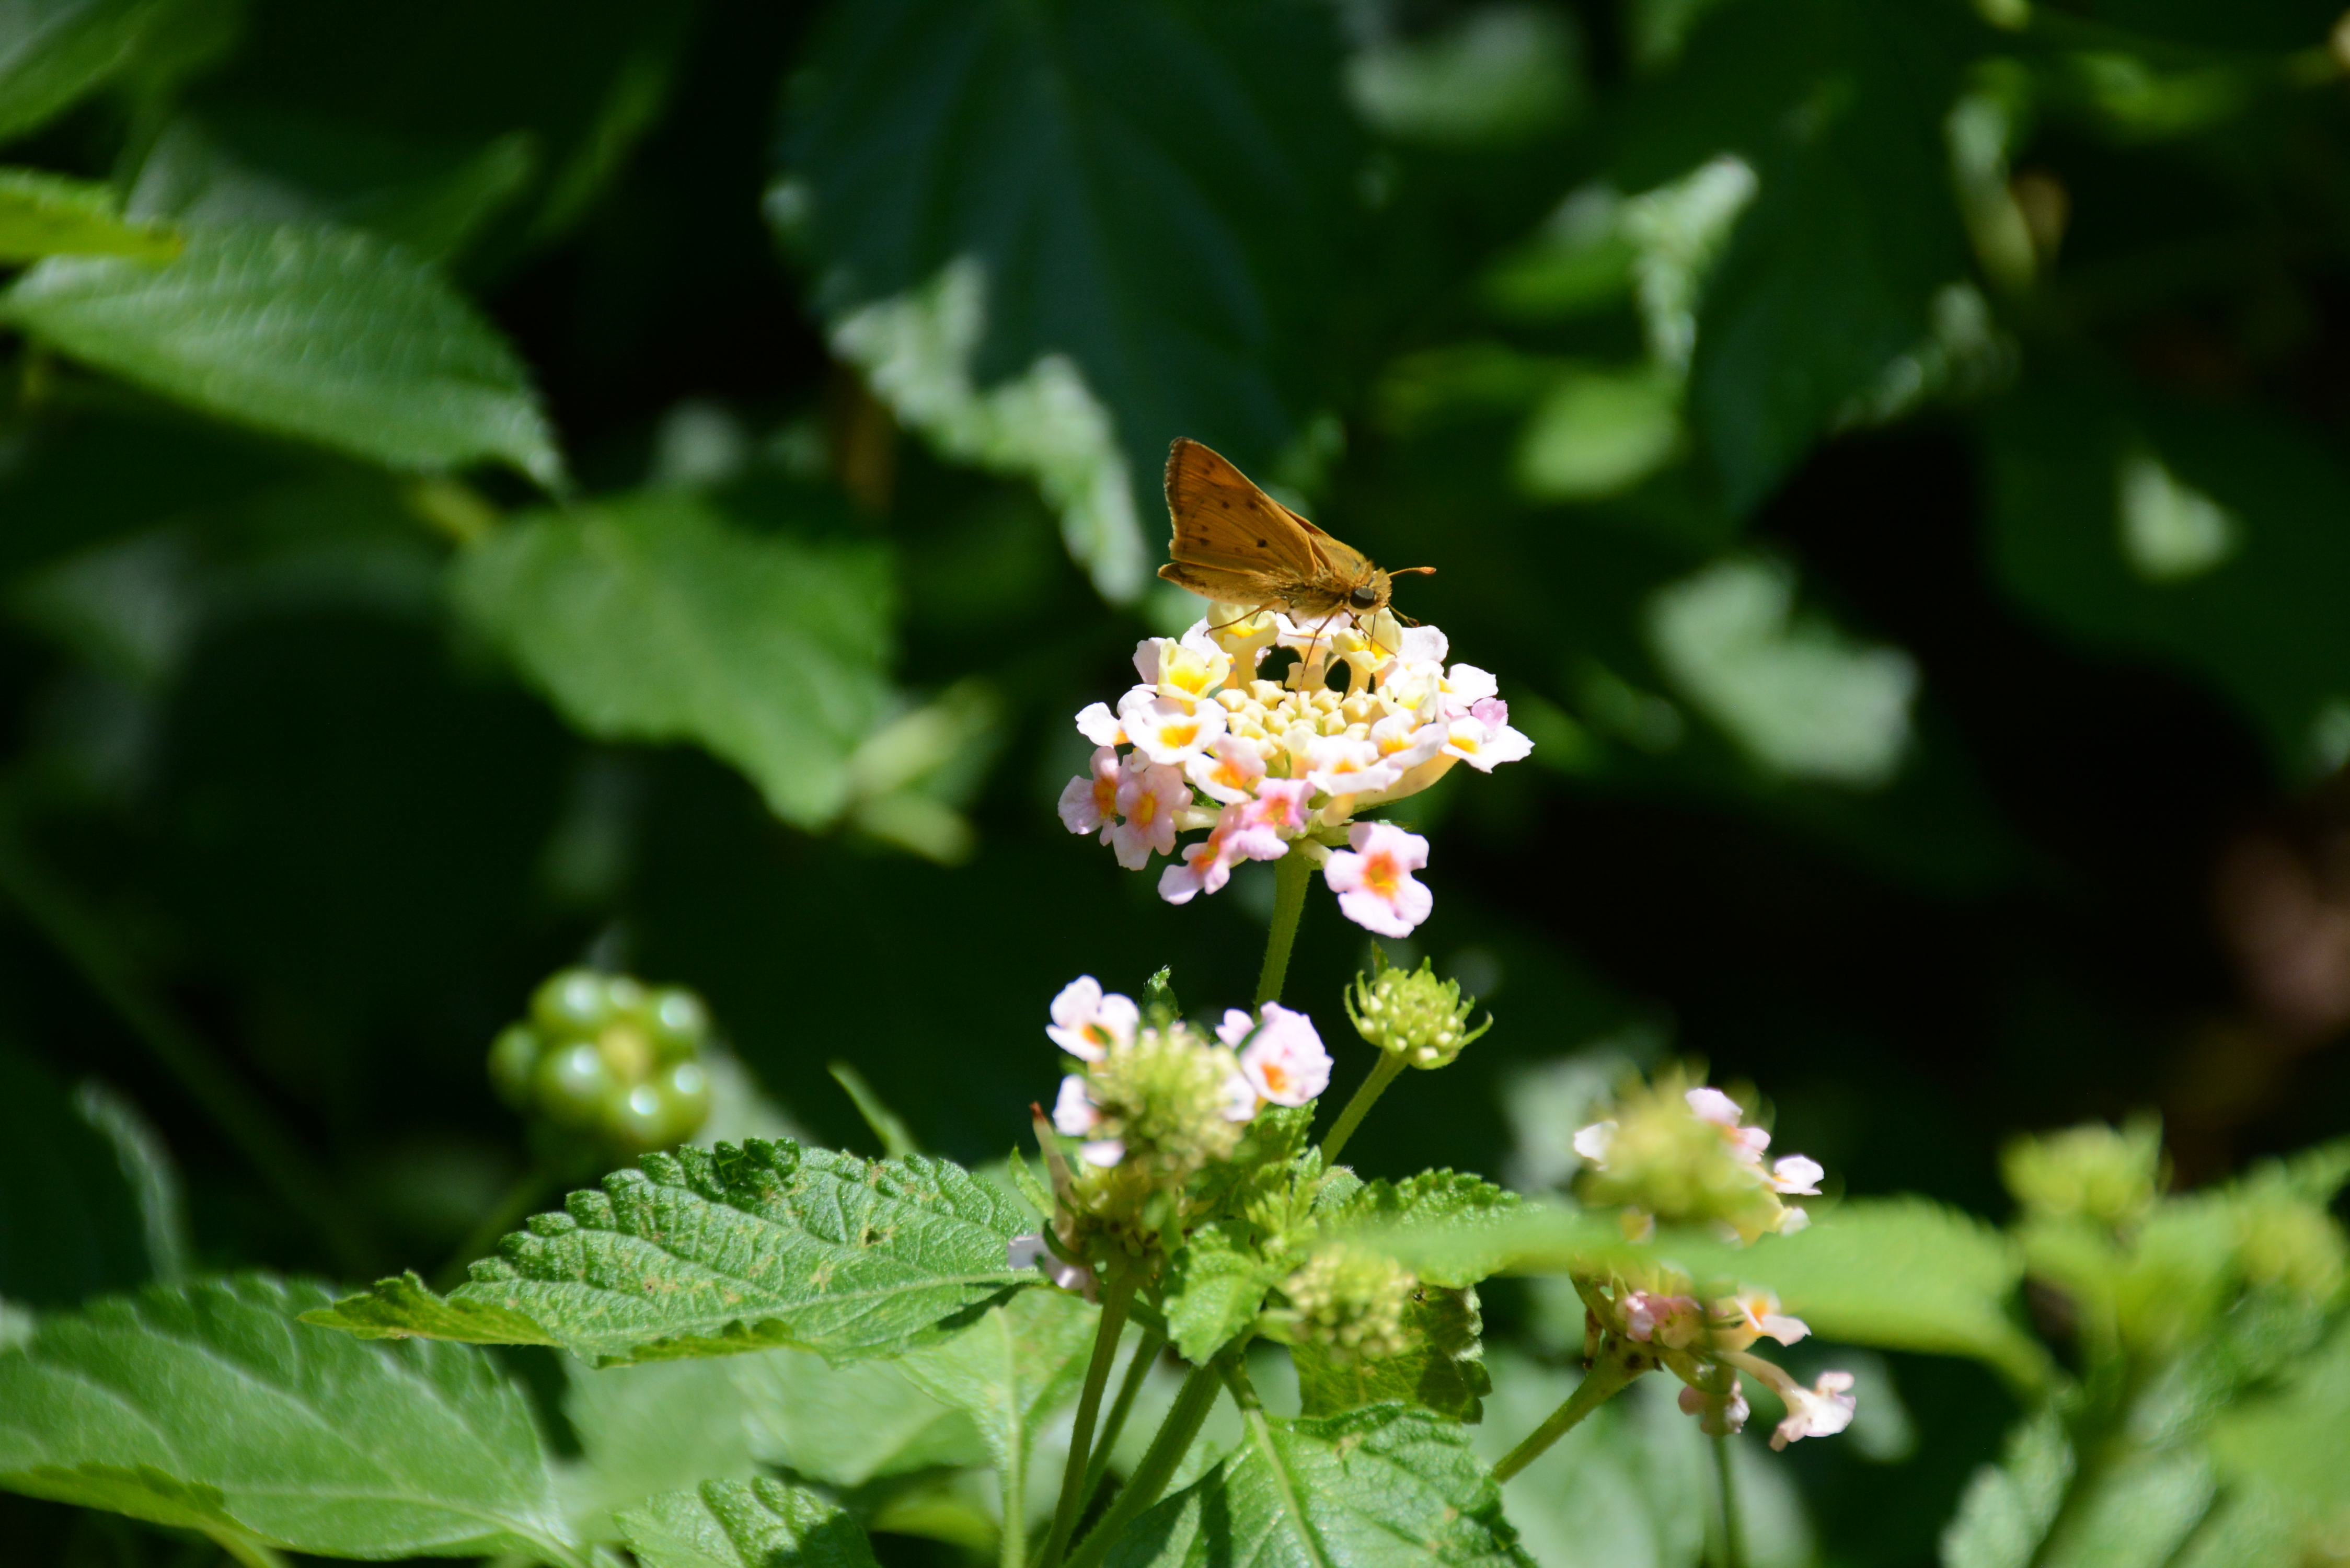 A small brown and orange butterfly sits on a cluster of tiny white flowers.